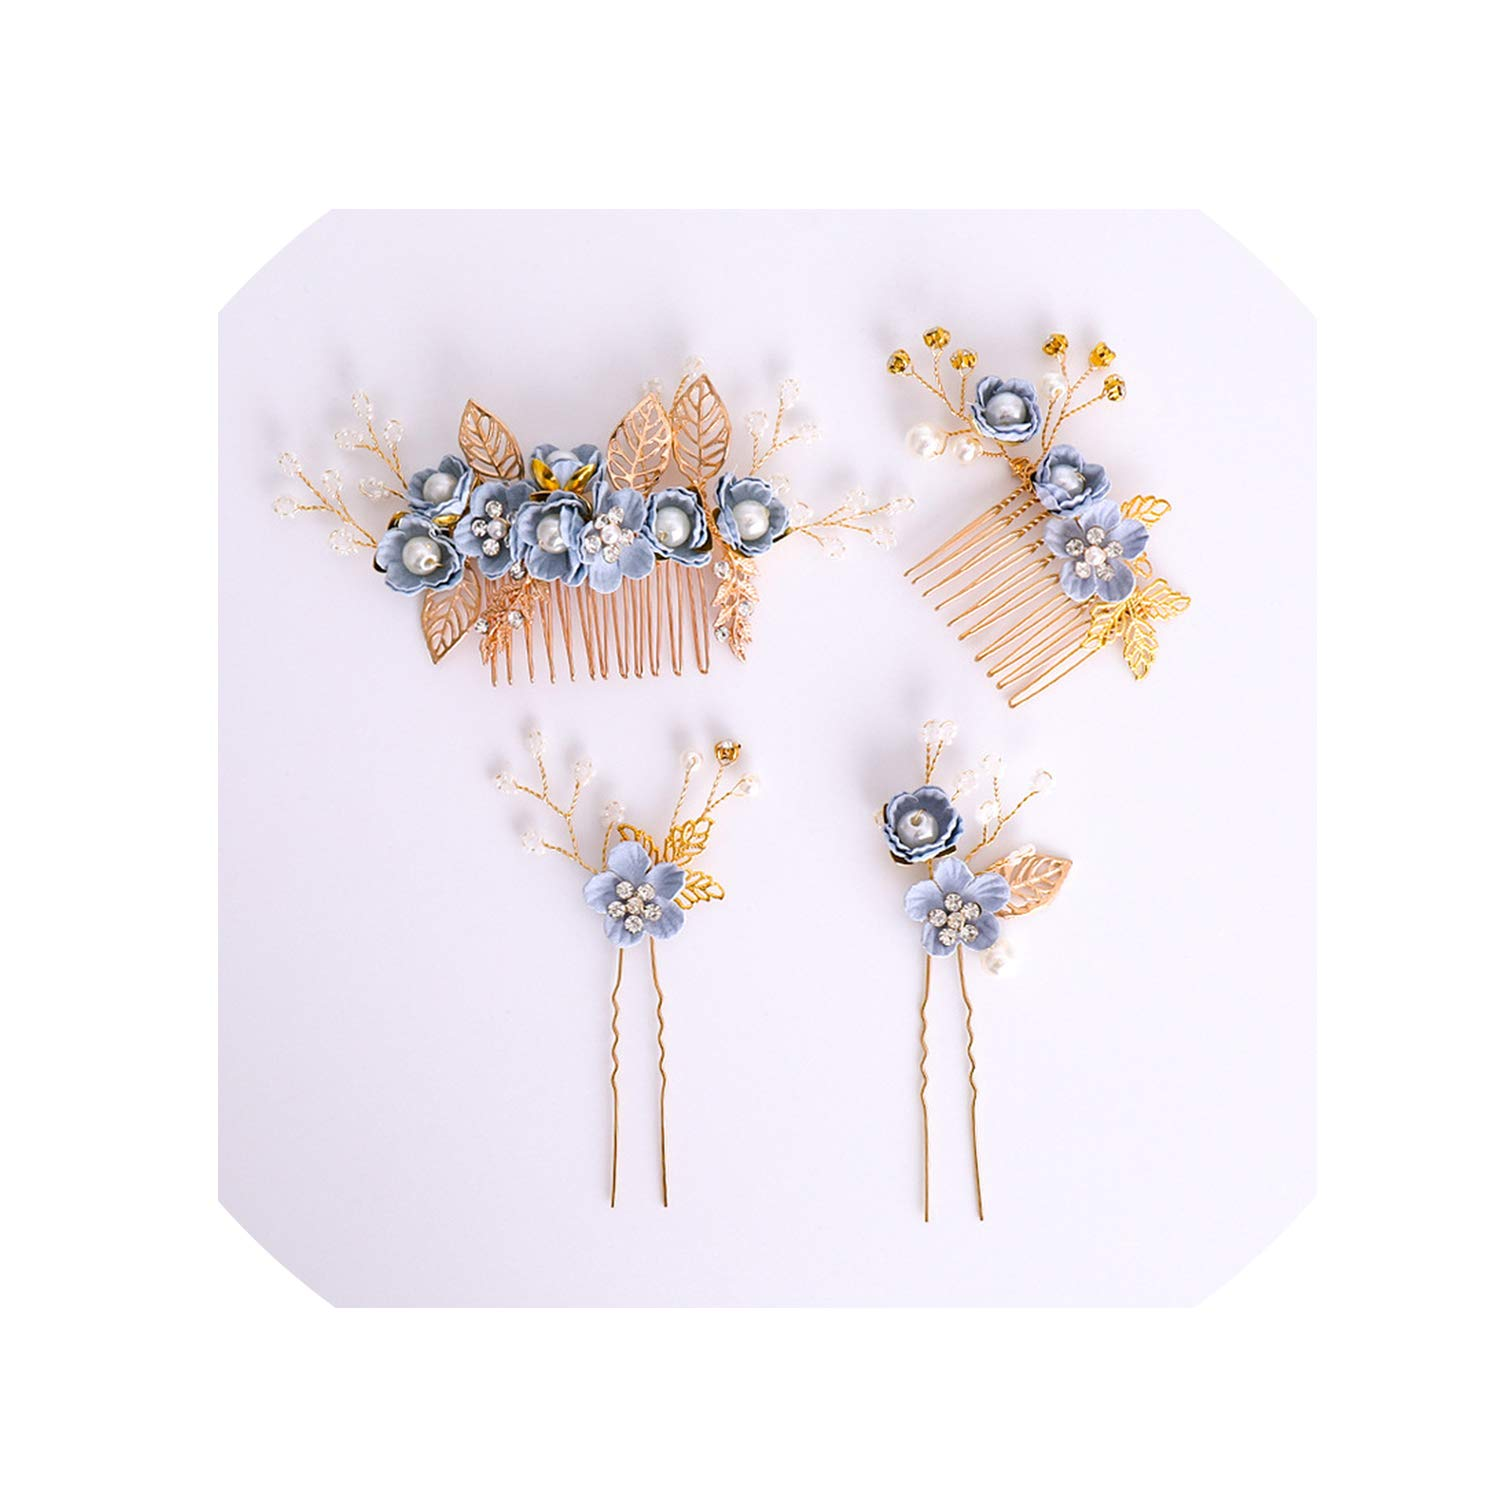 Vintage Blue Flowers Wedding Hair Pins Gold Leaves Metal Hair Comb Sticks Western Bridal Crystal Pearl Head Accessories,Set